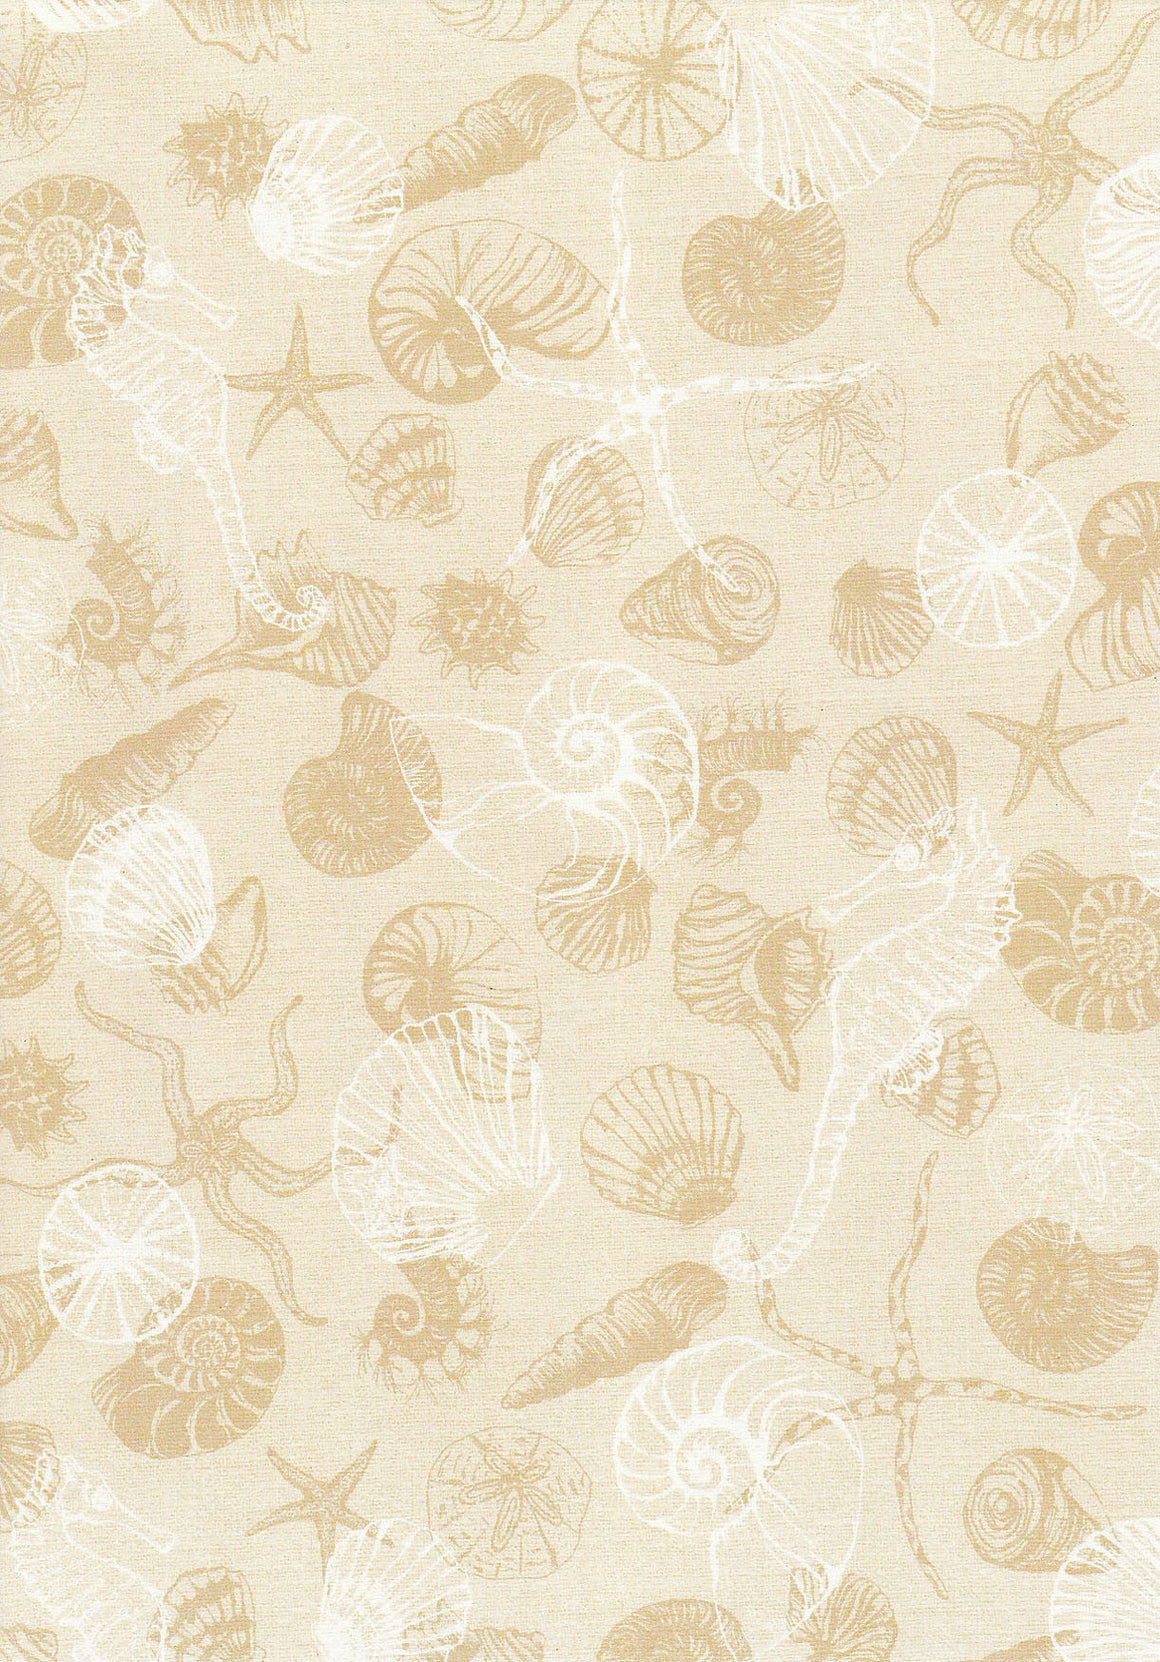 Sea Shell on sand Linen A4 Paper